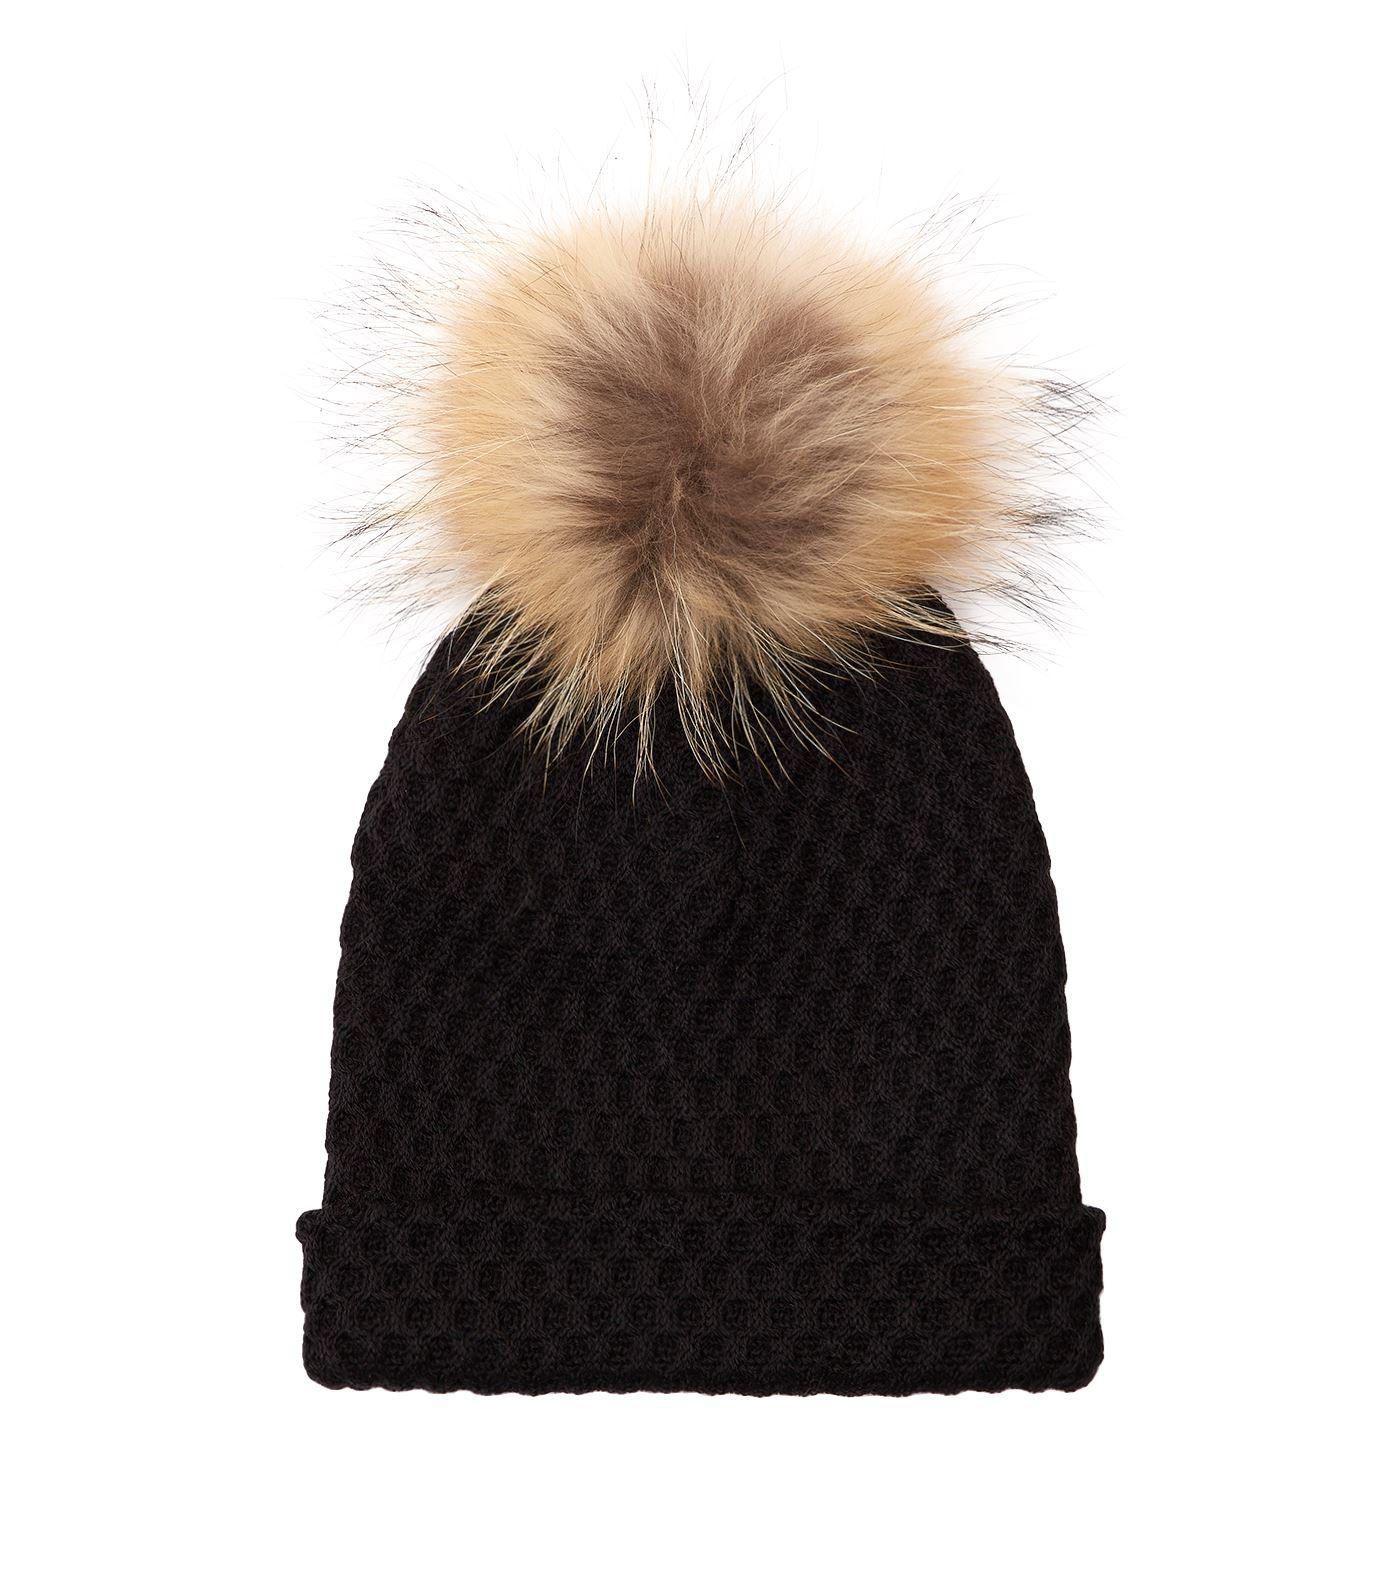 dcb17d01cd3 Claudie Pierlot Pom Pom Beanie Hat in Black - Lyst